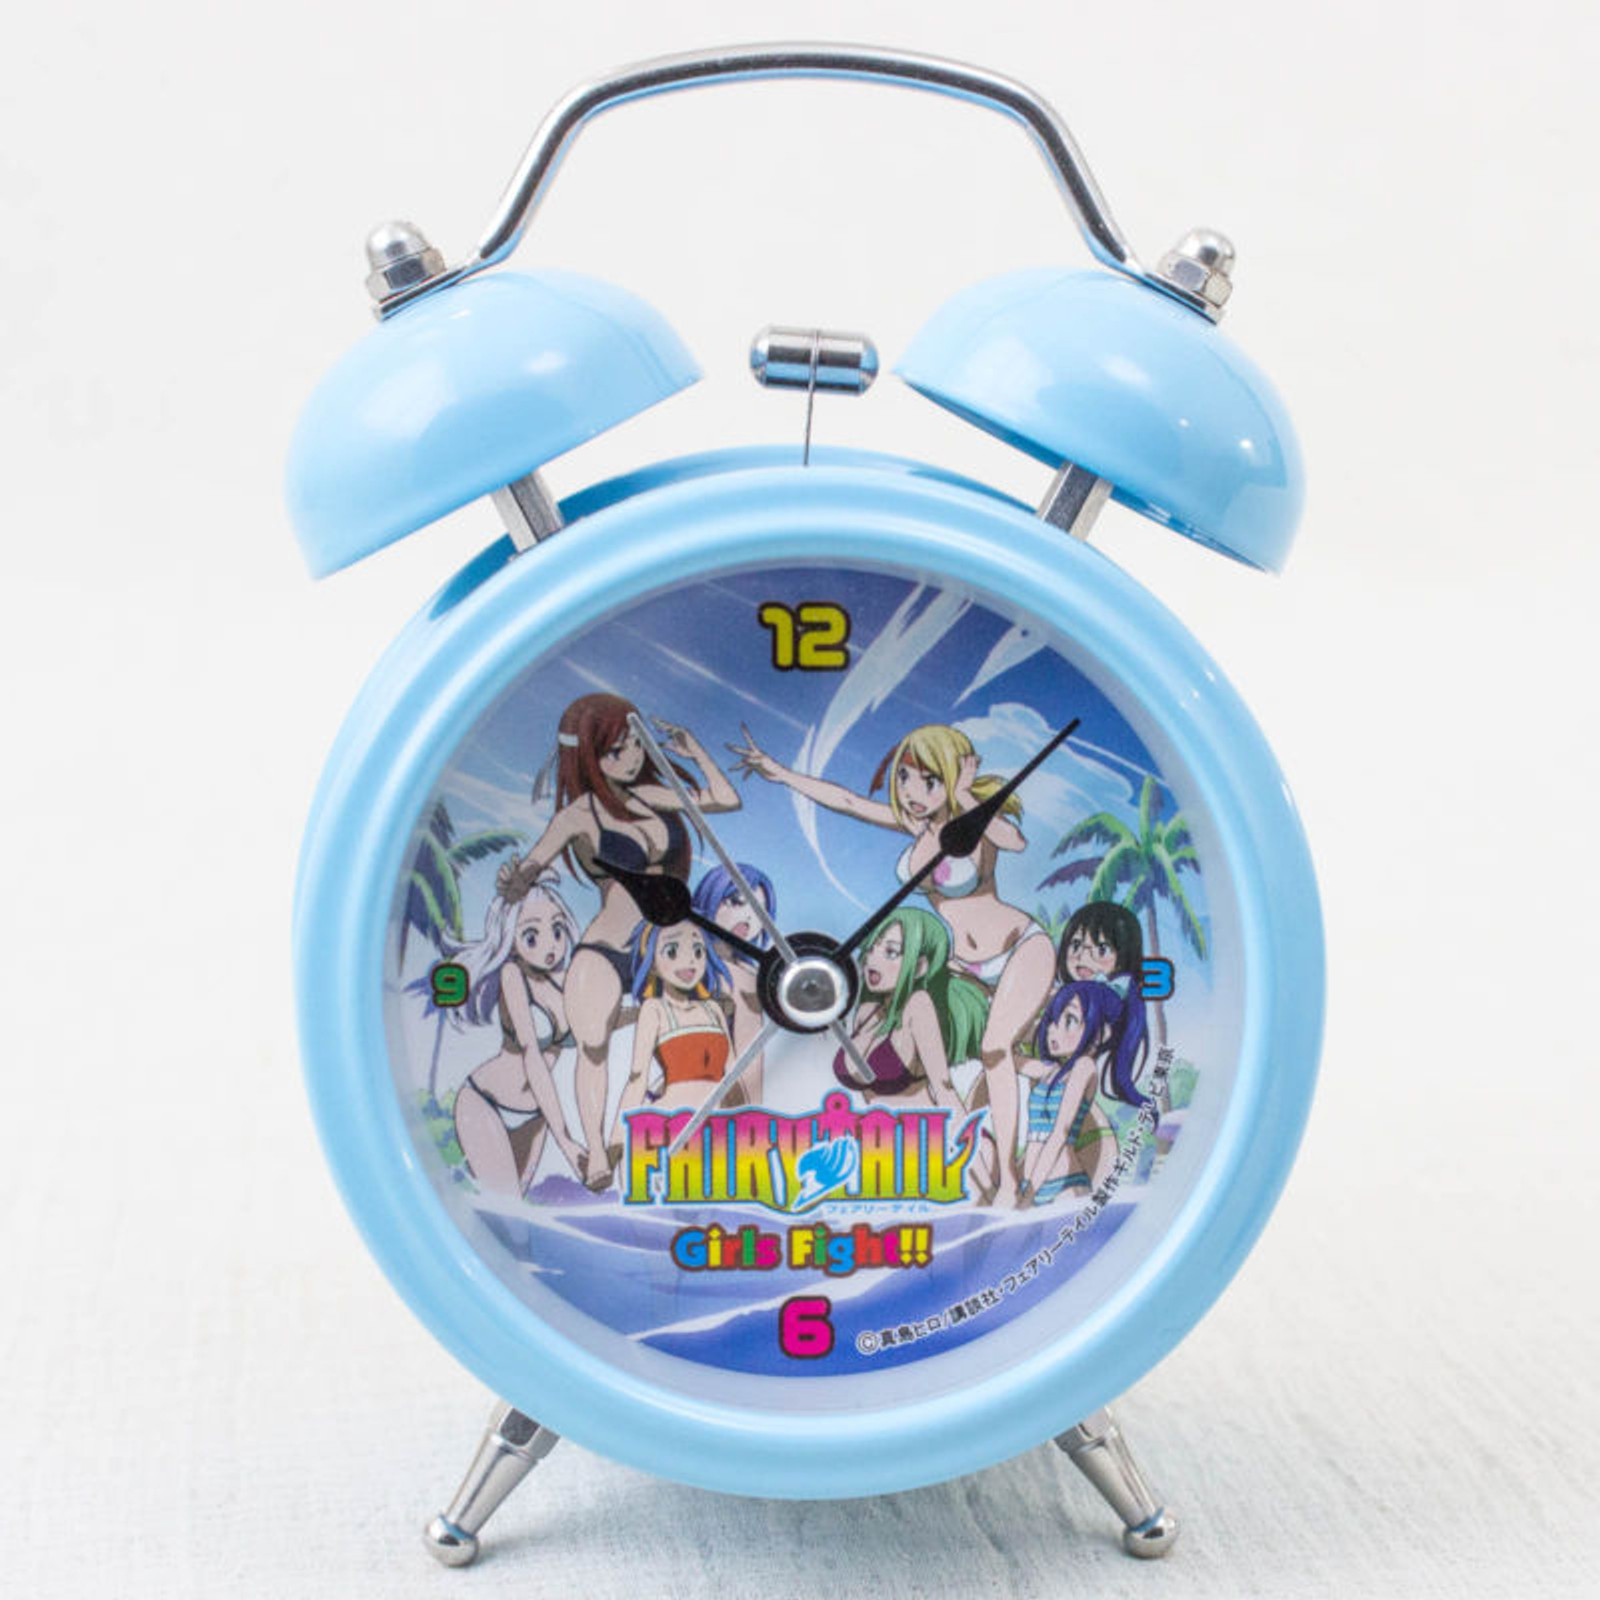 FAIRYTAIL Mini Alarm Clock Light Blue Ver. Taito JAPAN ANIME MANGA